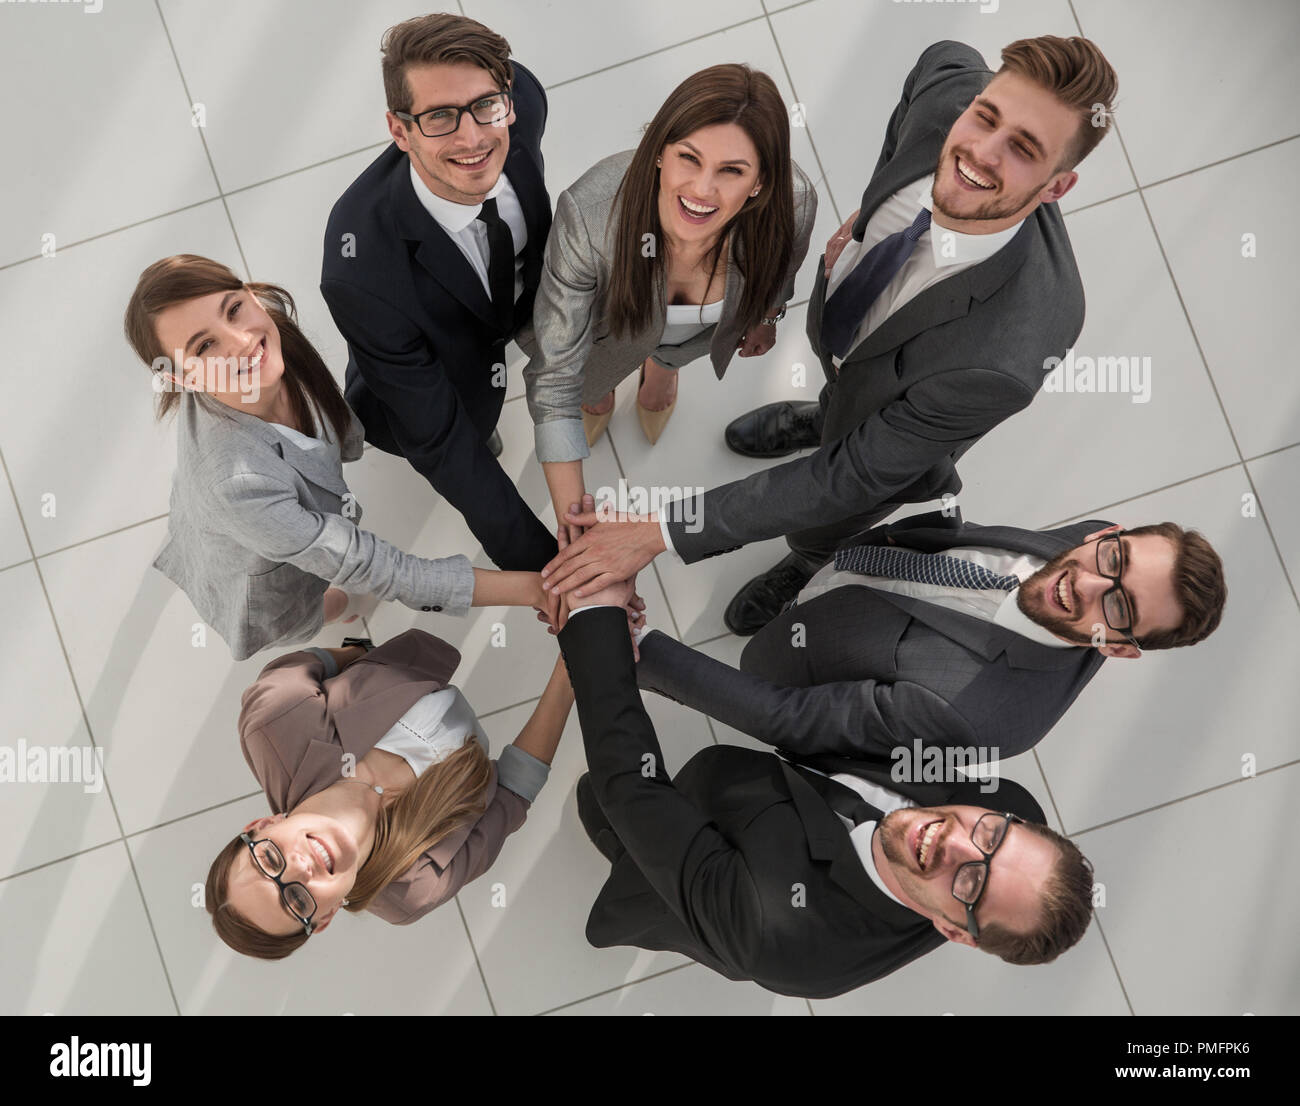 top view.smiling group of business people standing together - Stock Image